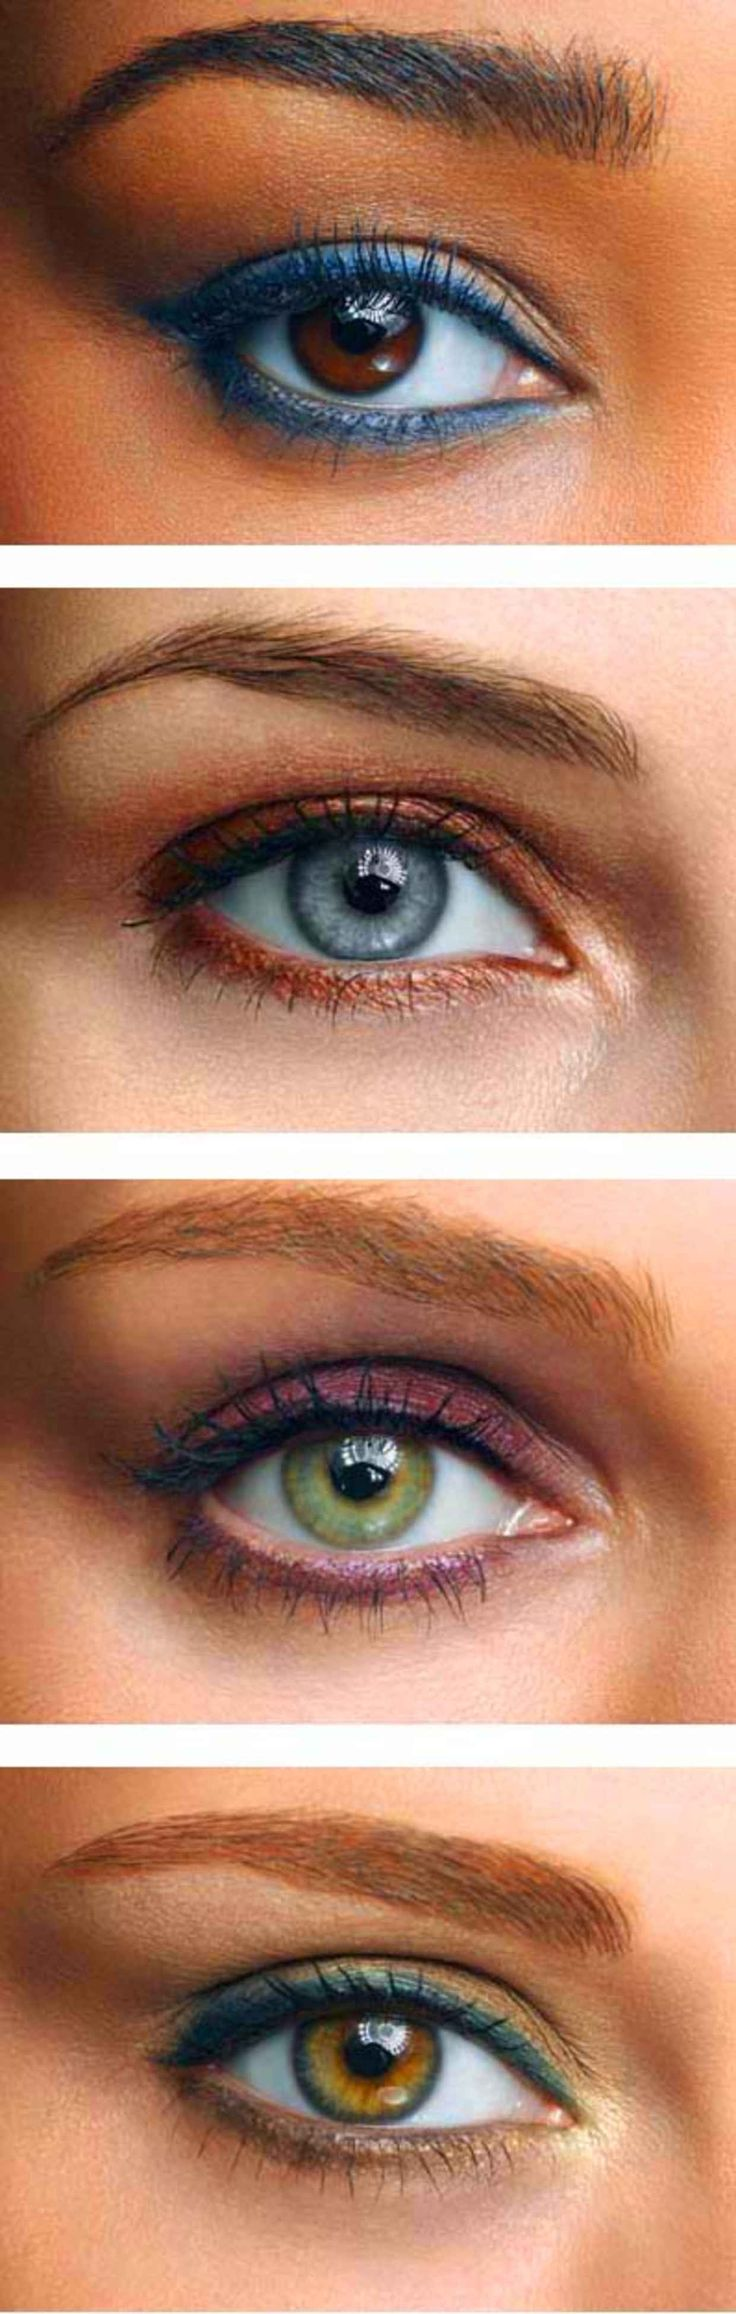 Makeup for Your Eye Colour: Suggestions from Makeup-Pro Carmindy - Beautygeeks